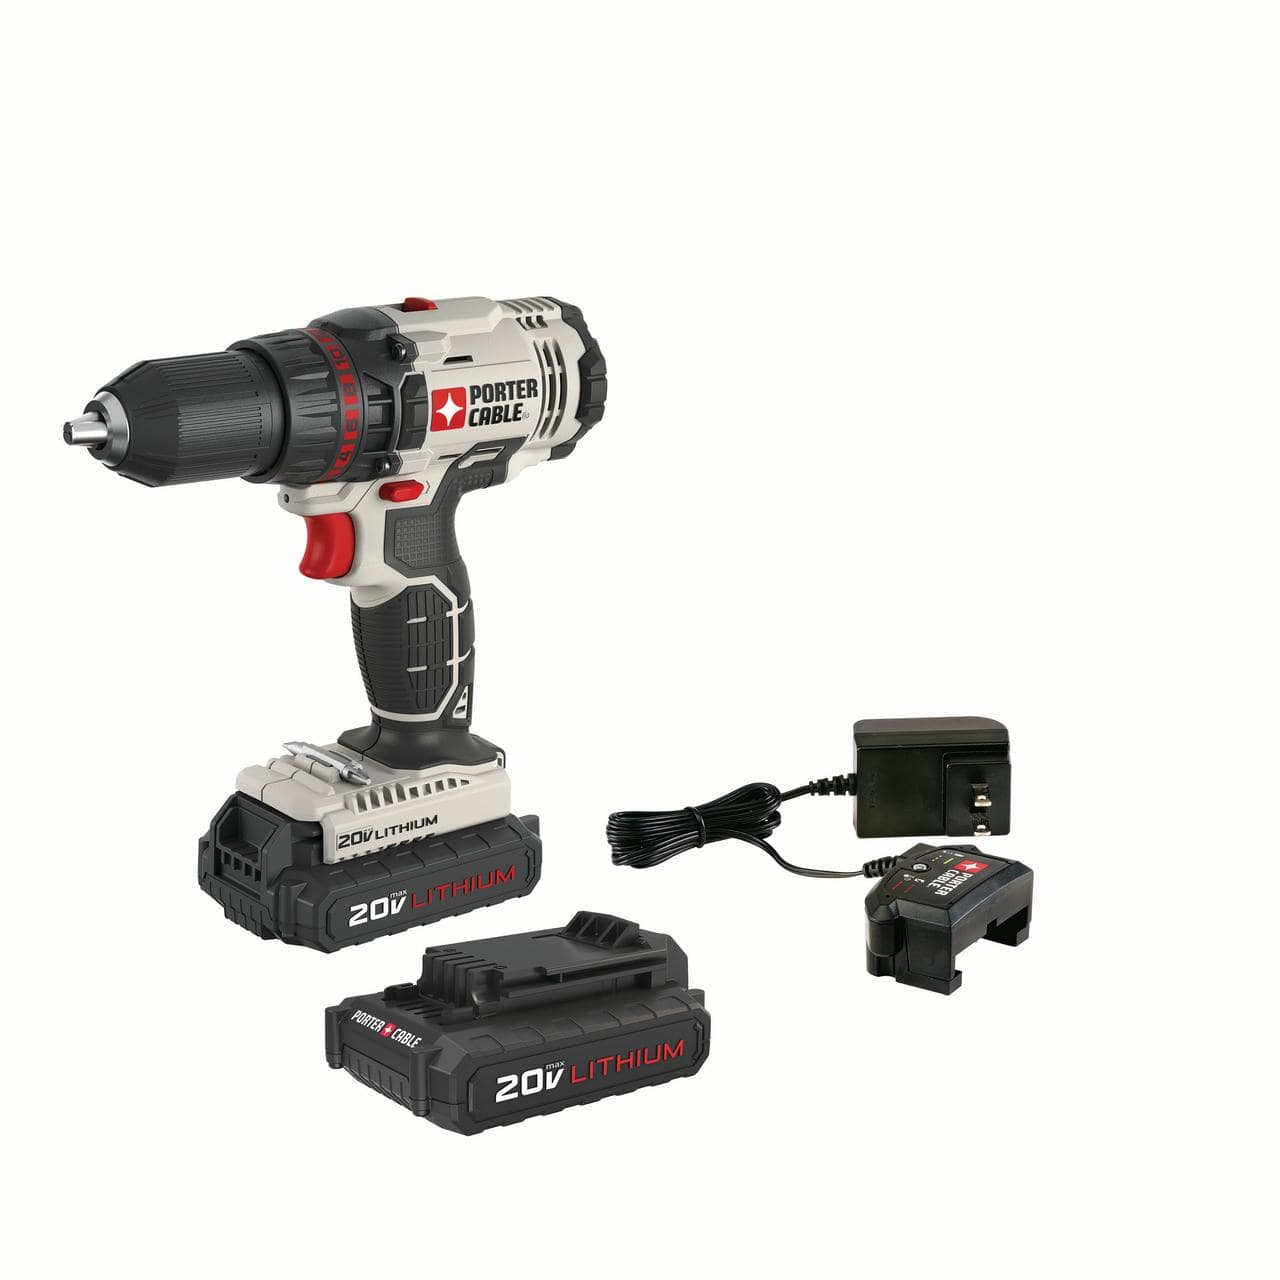 PORTER CABLE 20-Volt Max 1/2-Inch Lithium-Ion Compact Cordless Drill- $40 @ Walmart - YMMV